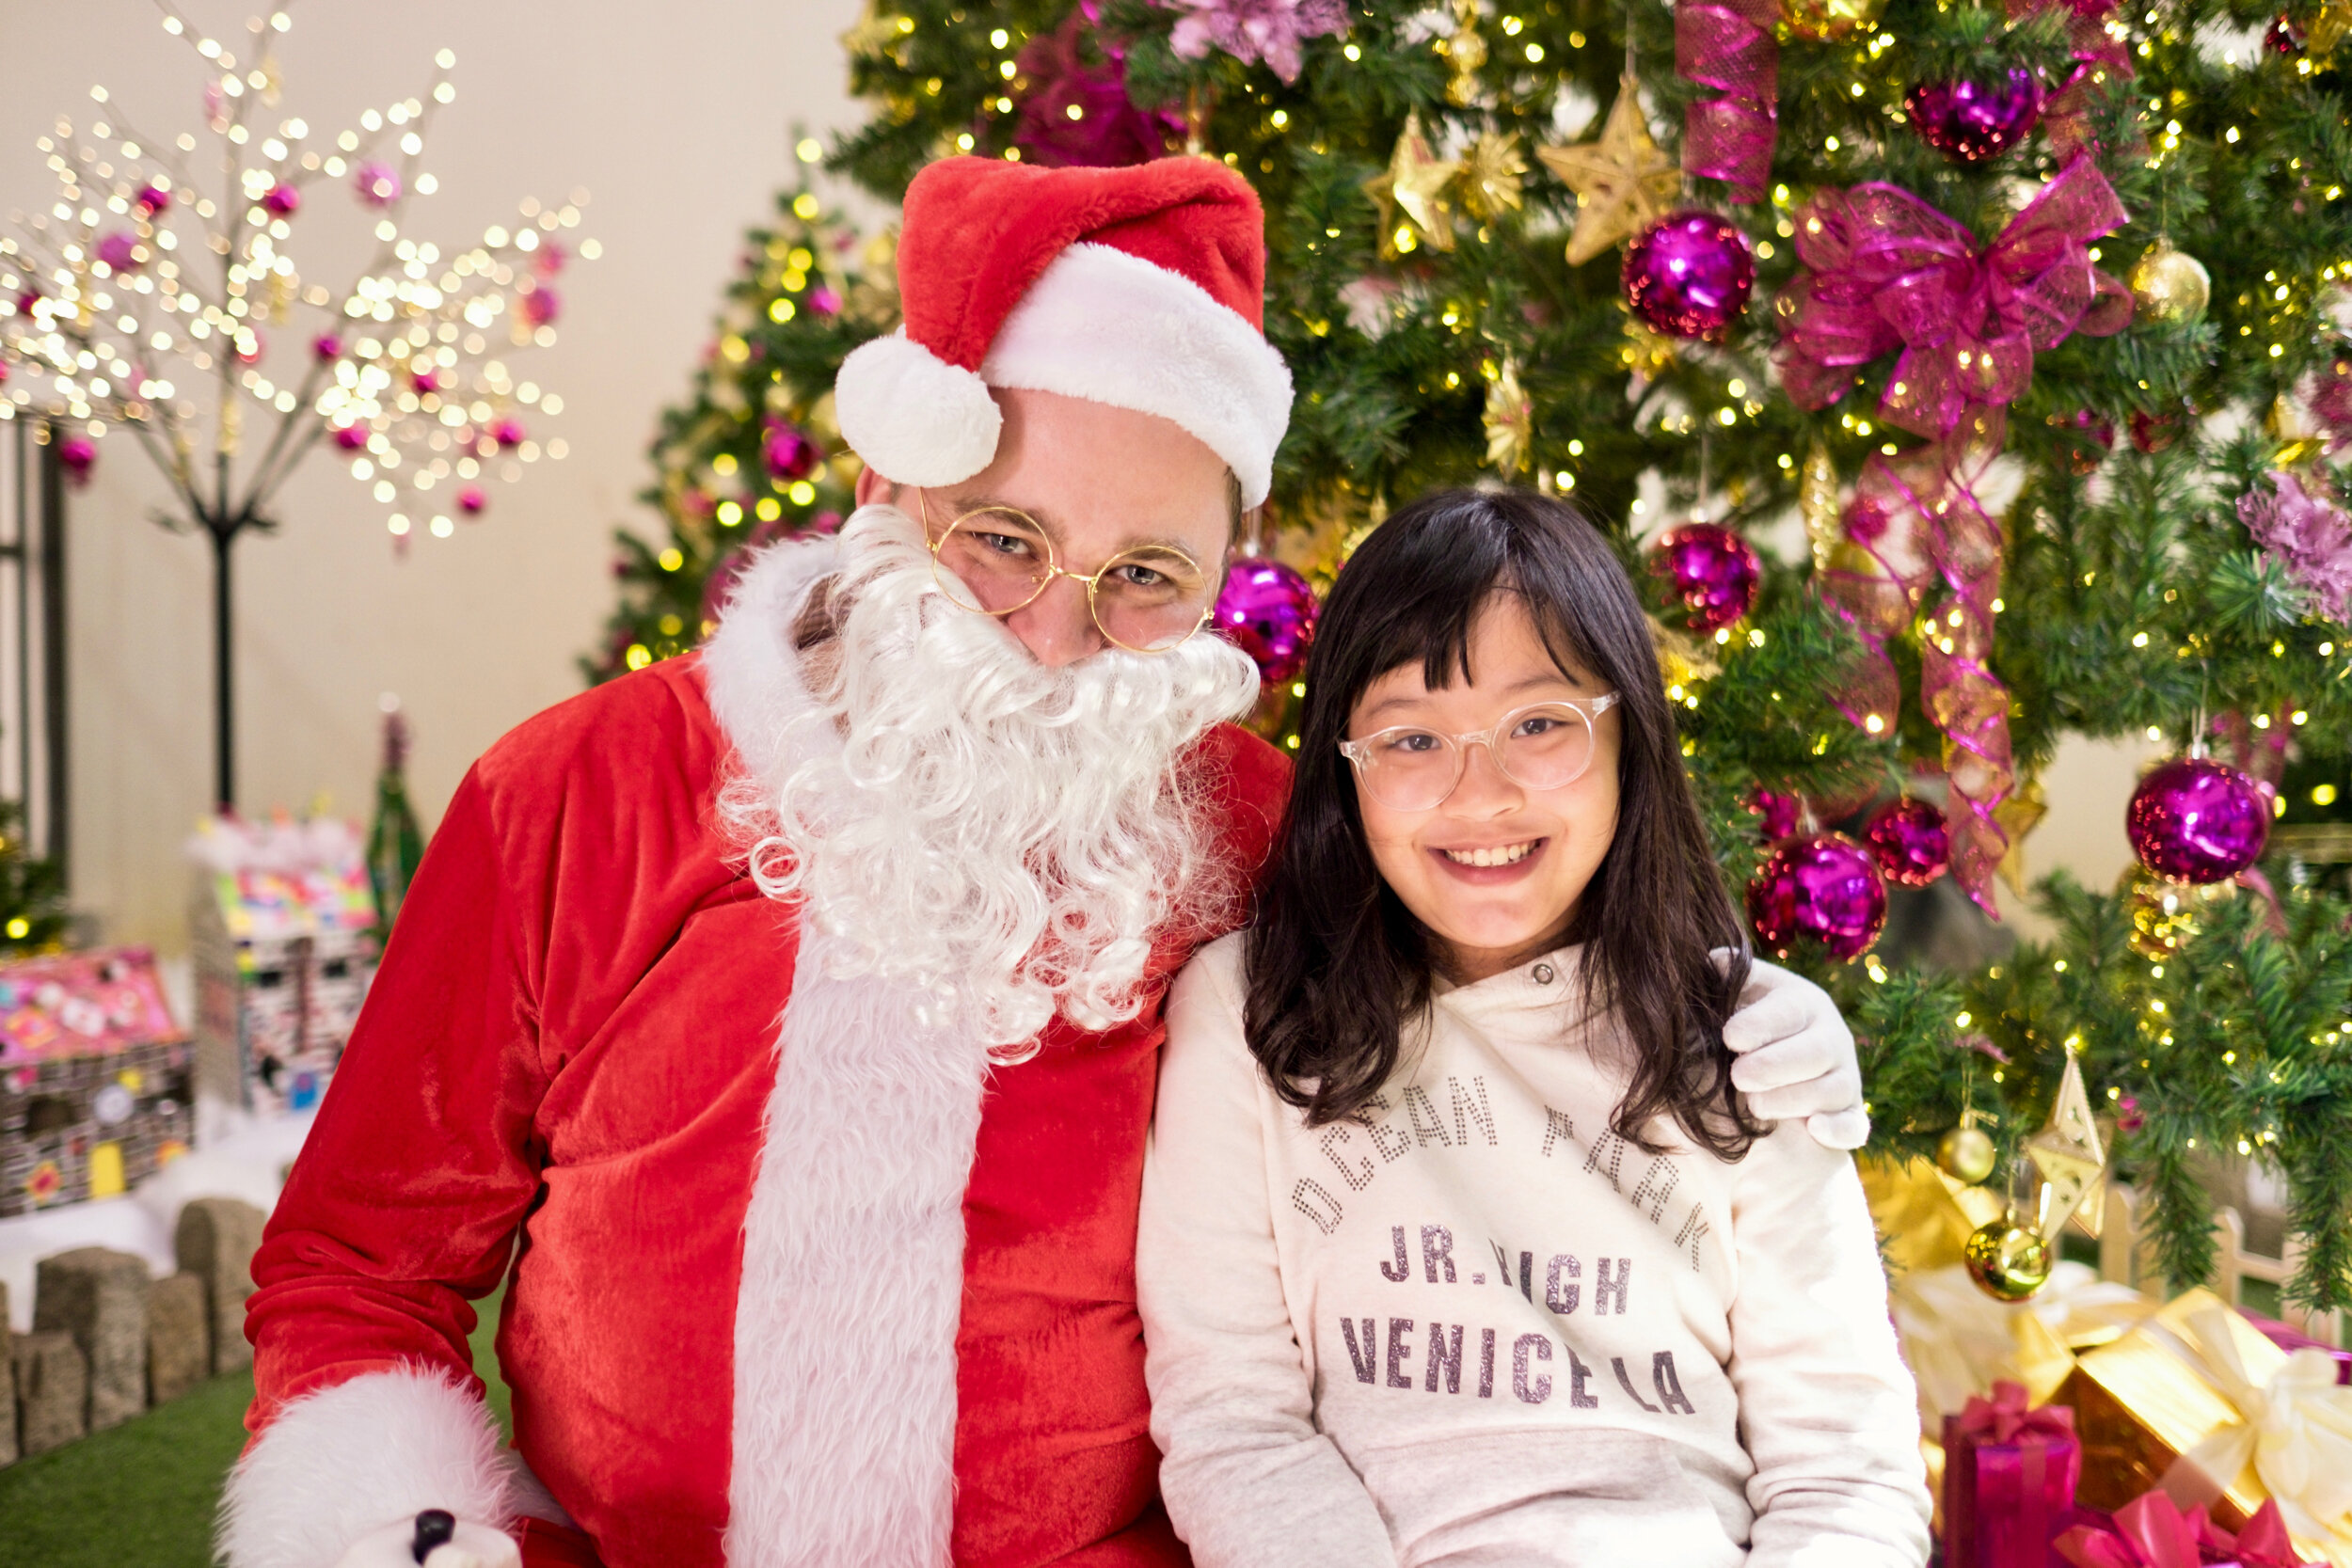 Photoshoot with Santa Clause-645.jpg